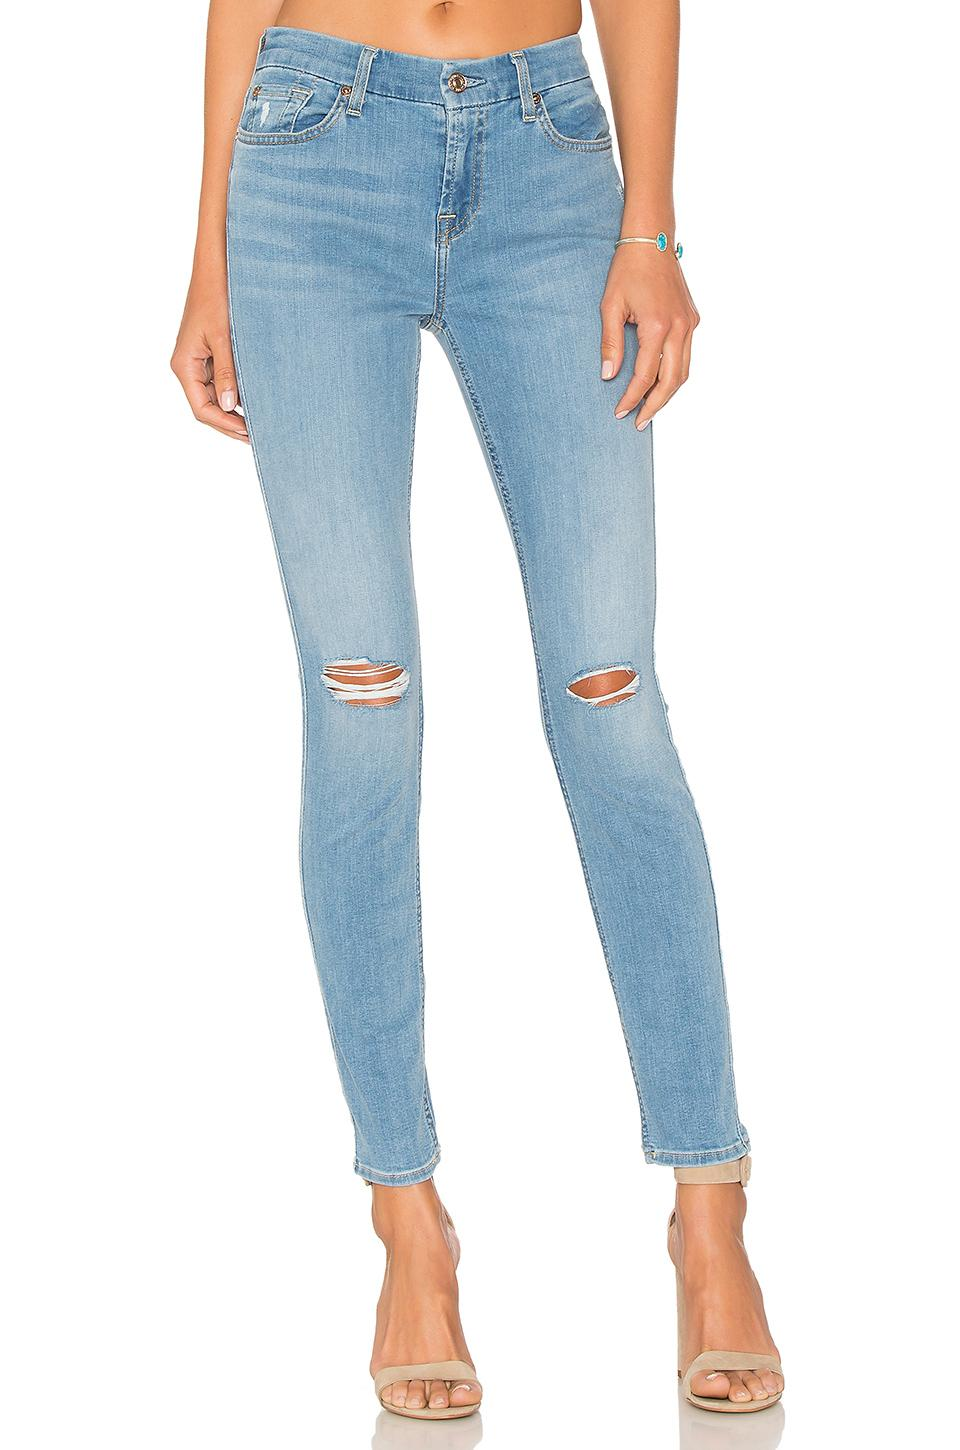 7 For All Mankind Ankle Skinny.  In B(Air) Sunfaded 2